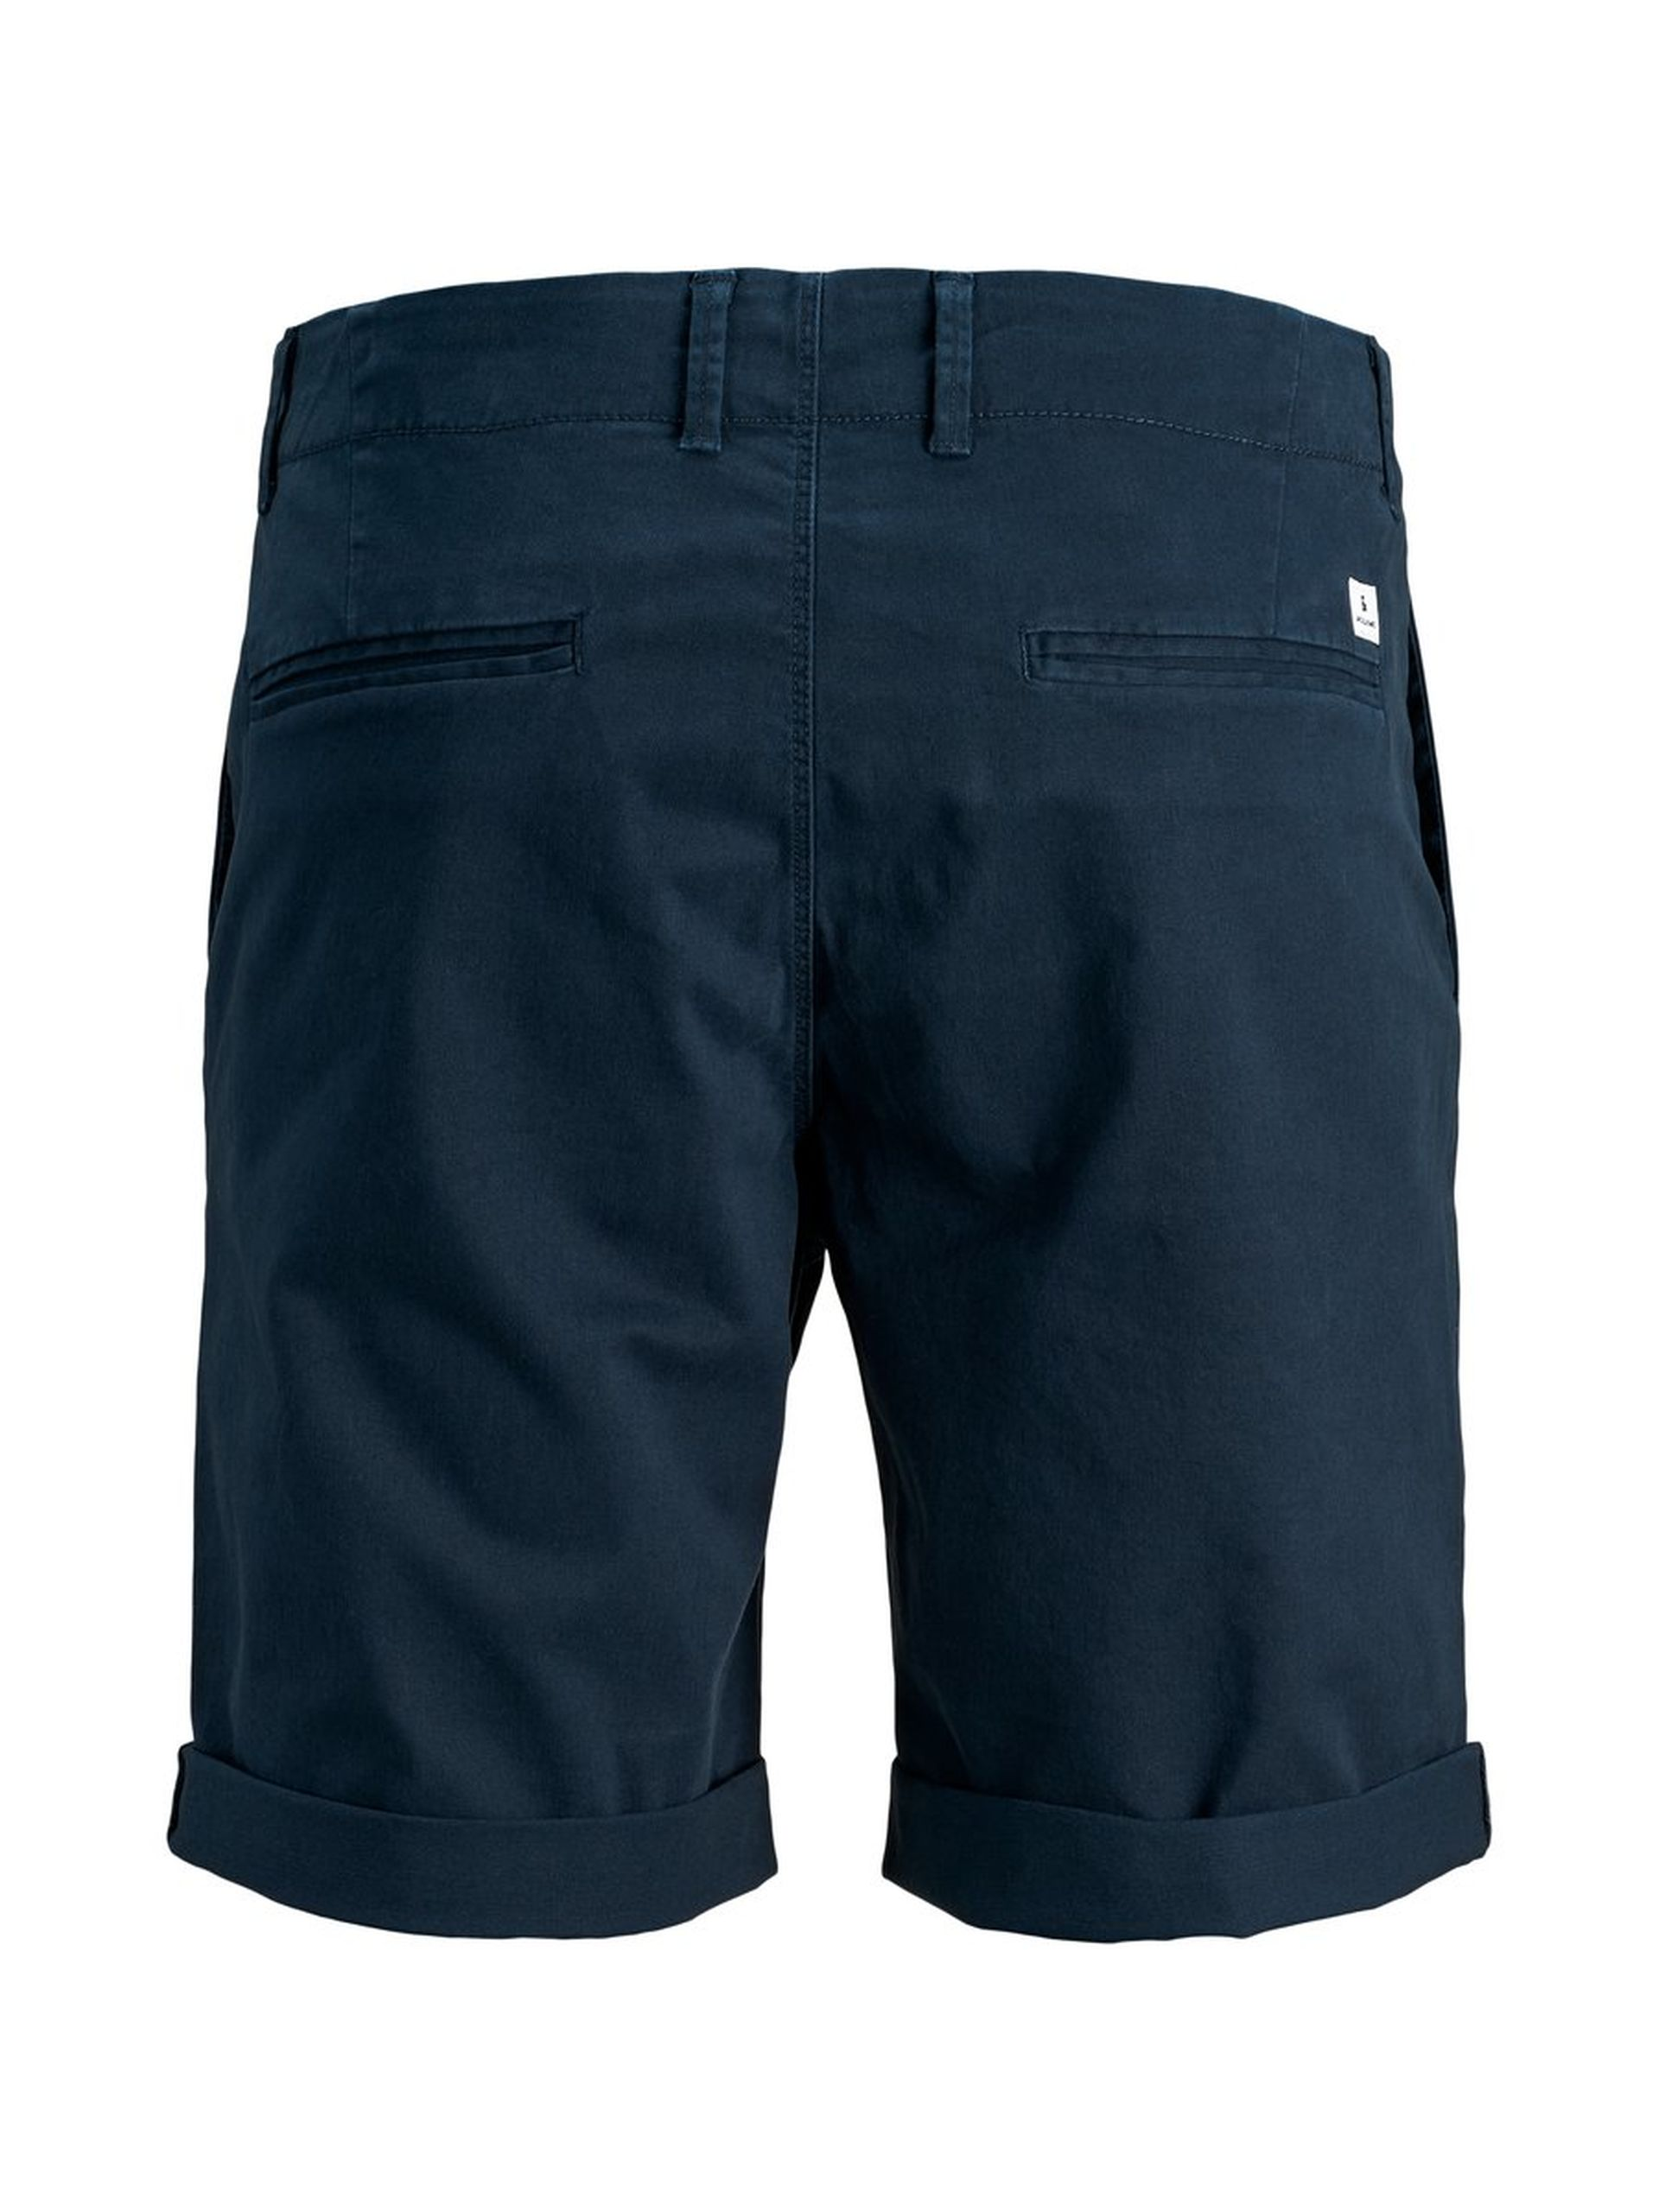 Jack-amp-Jones-Mens-039-JJIENZO-039-Chino-Shorts thumbnail 6